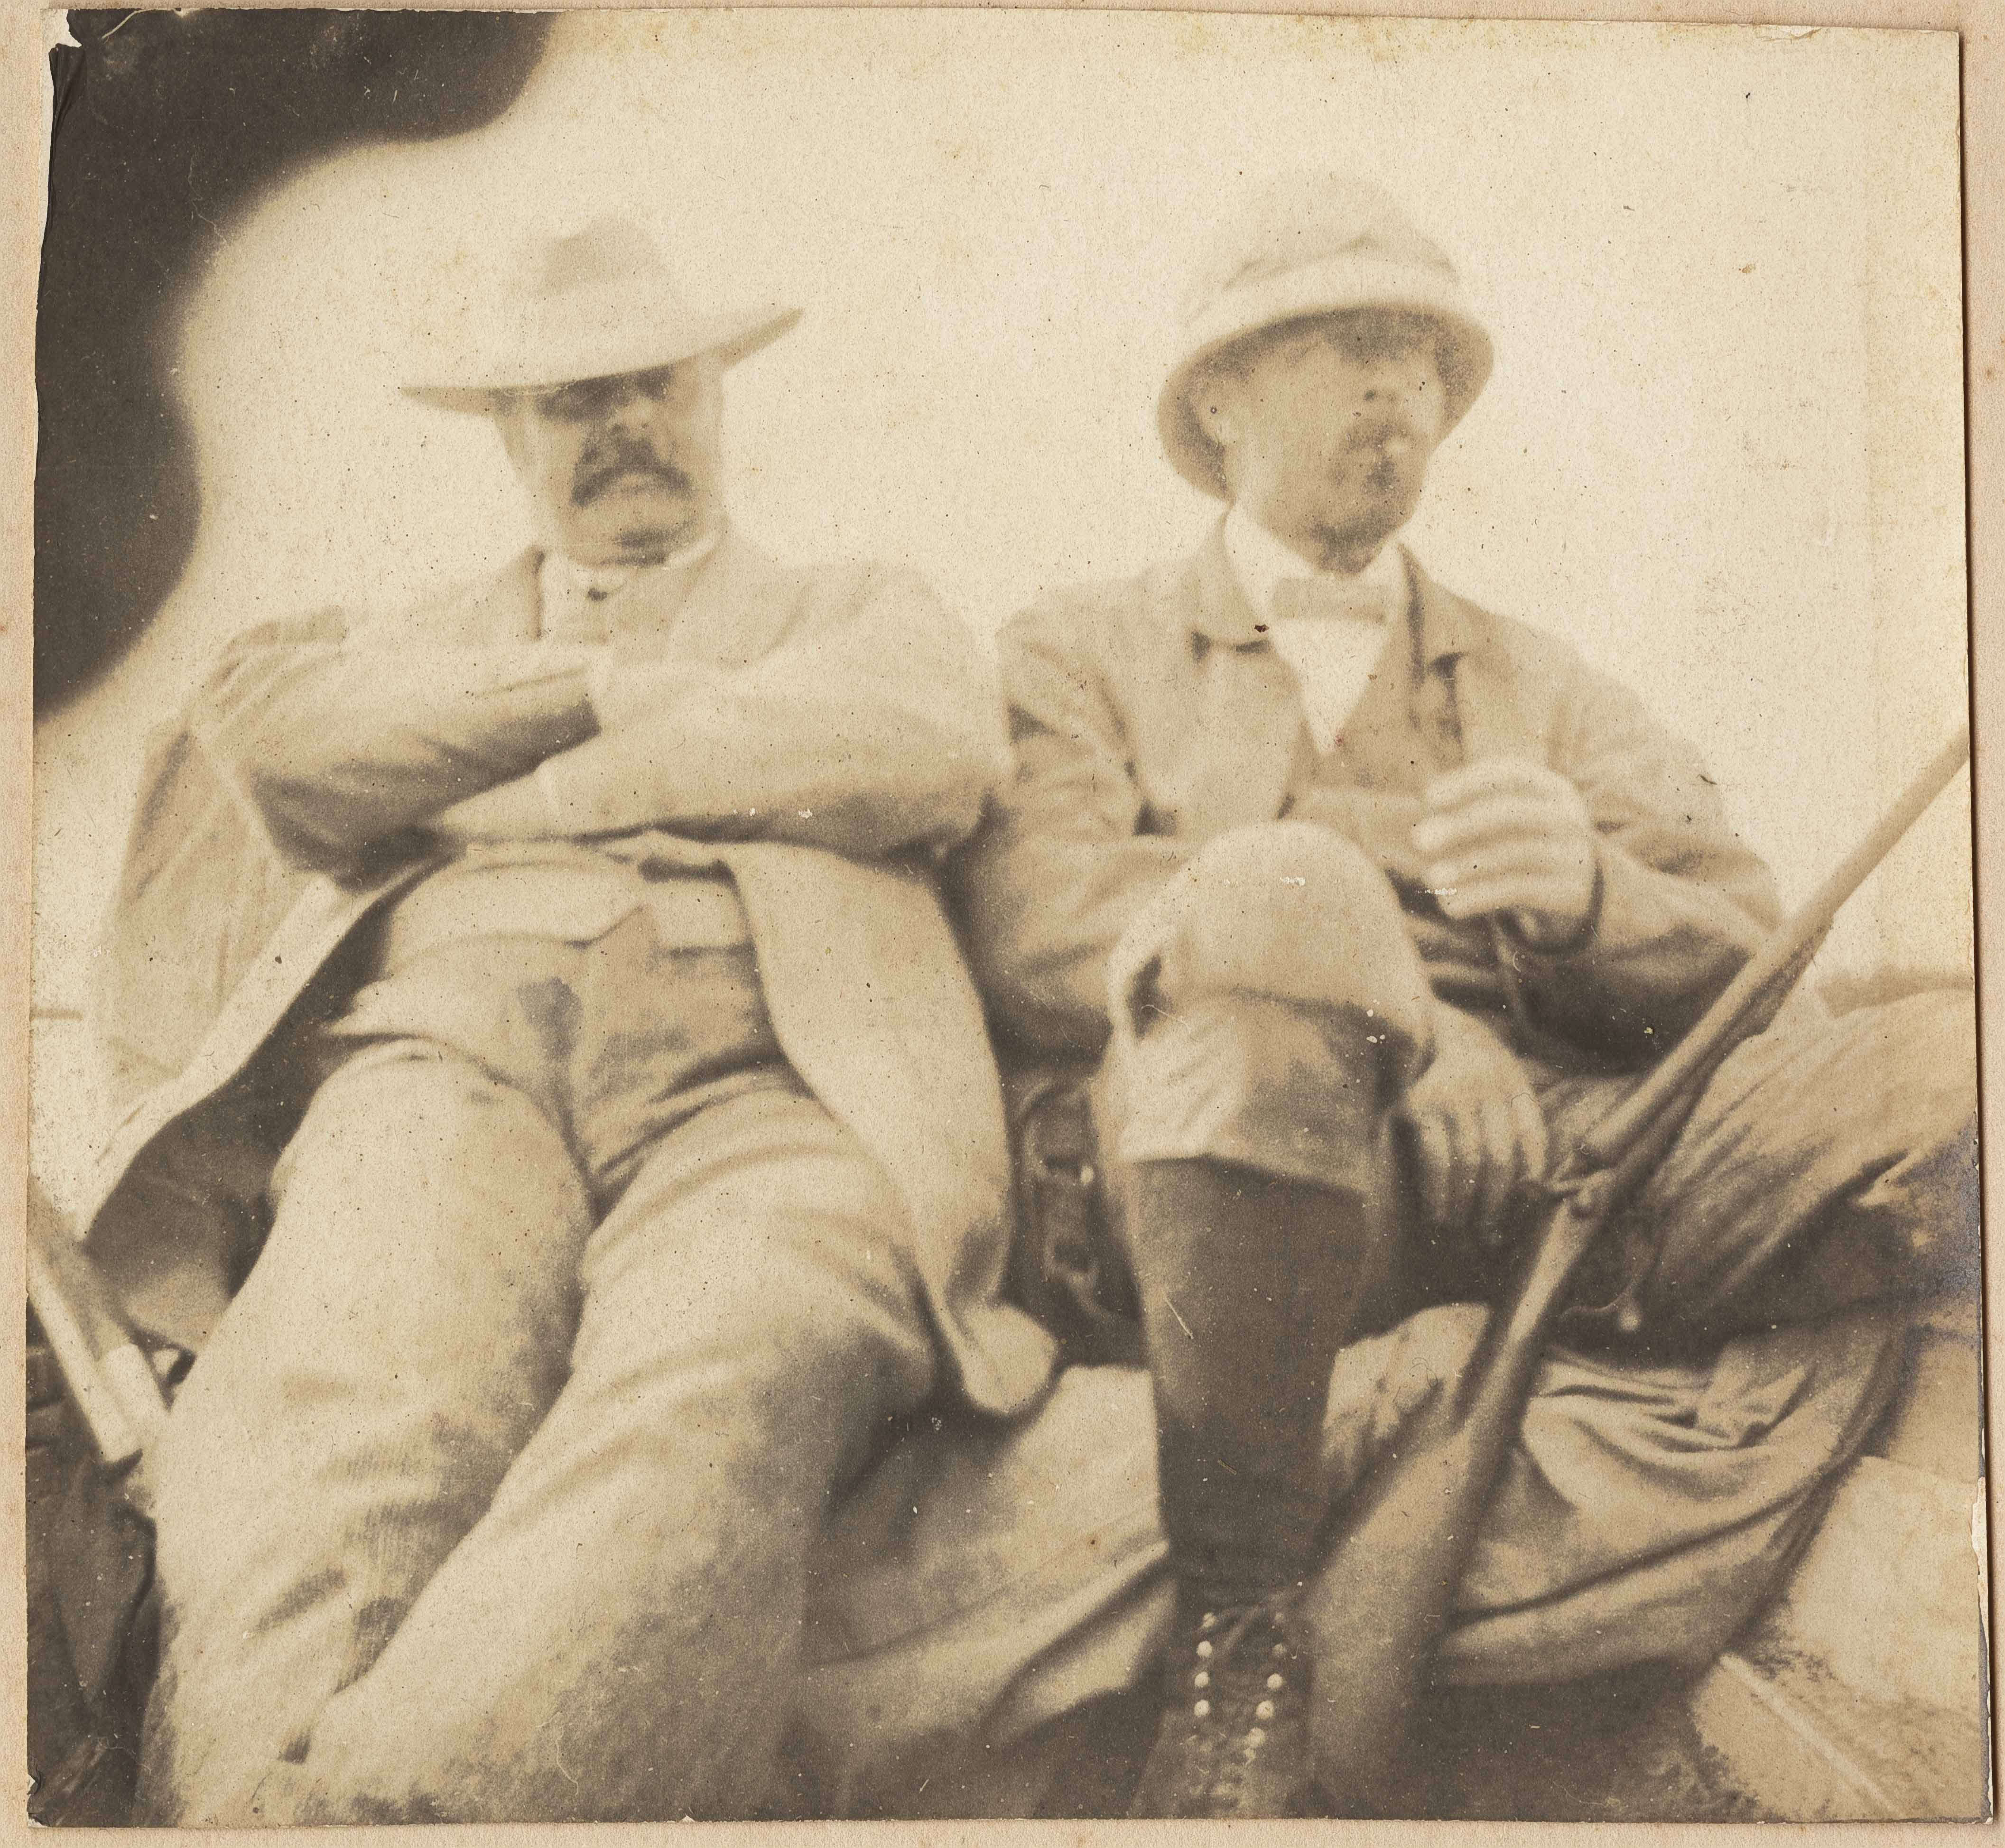 Christopher Donner and unidentified man on a hunt